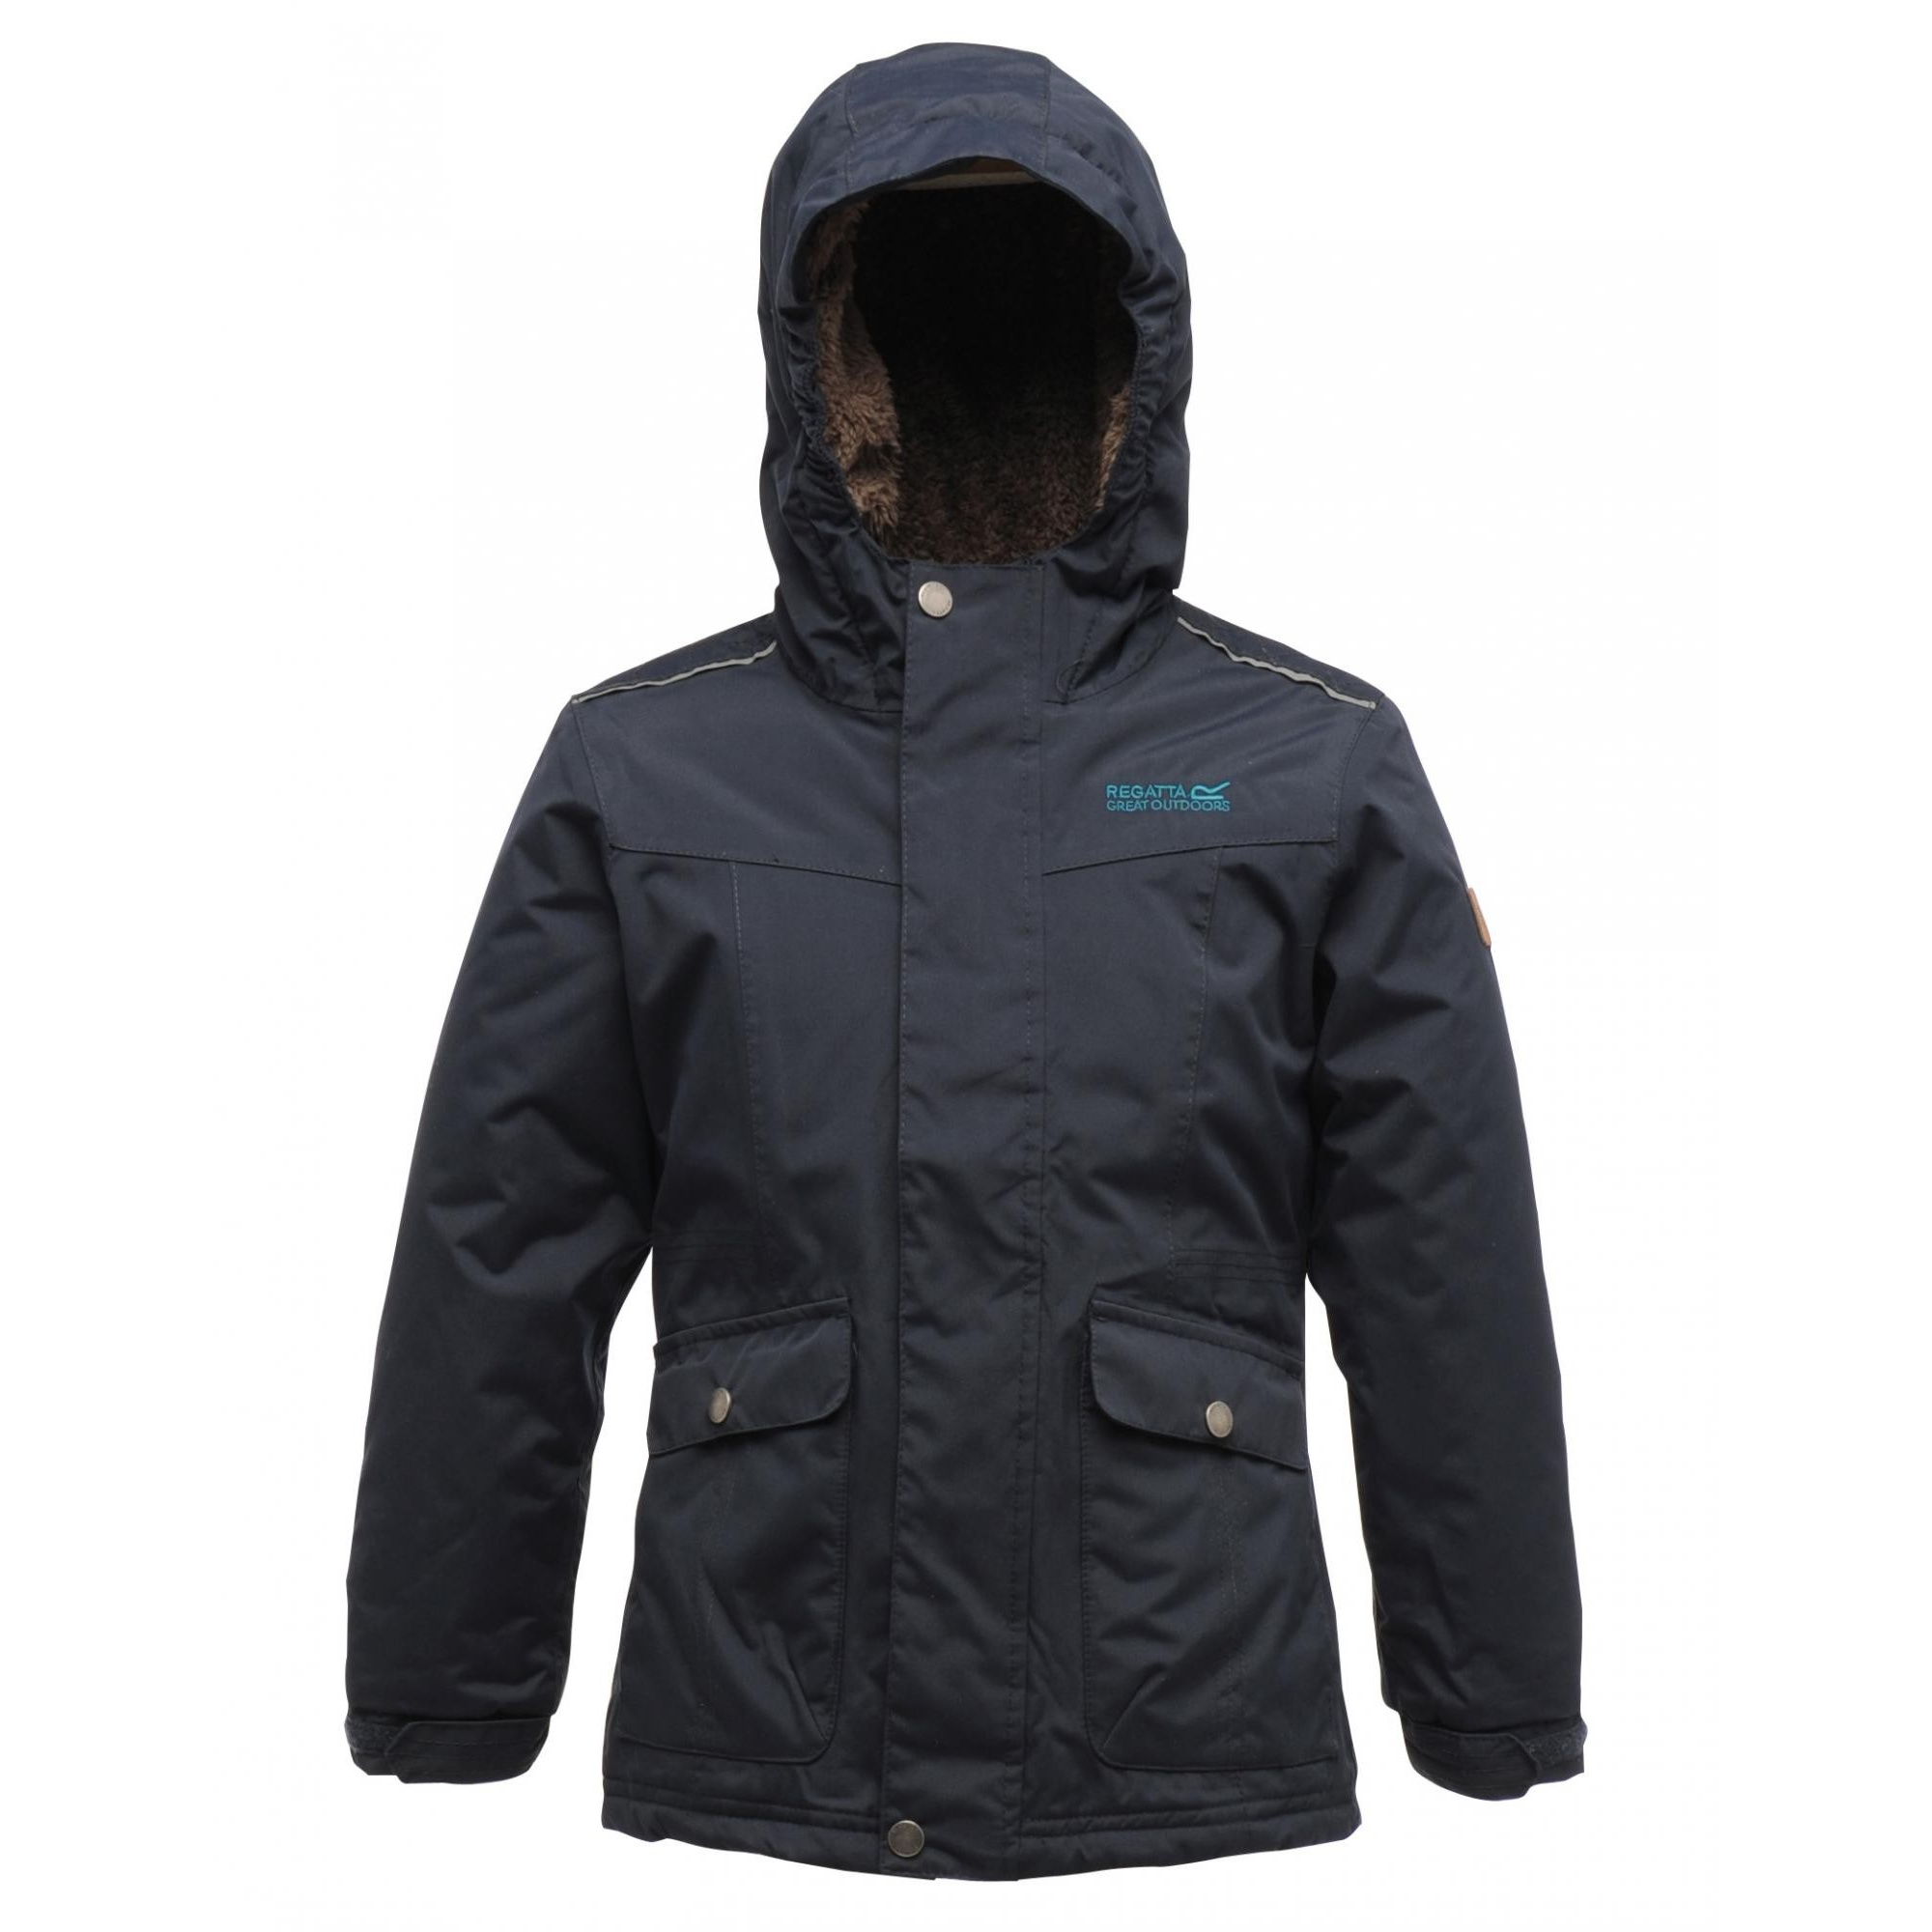 Regatta Great Outdoors Childrens Girls Akela Waterproof Jacket | eBay